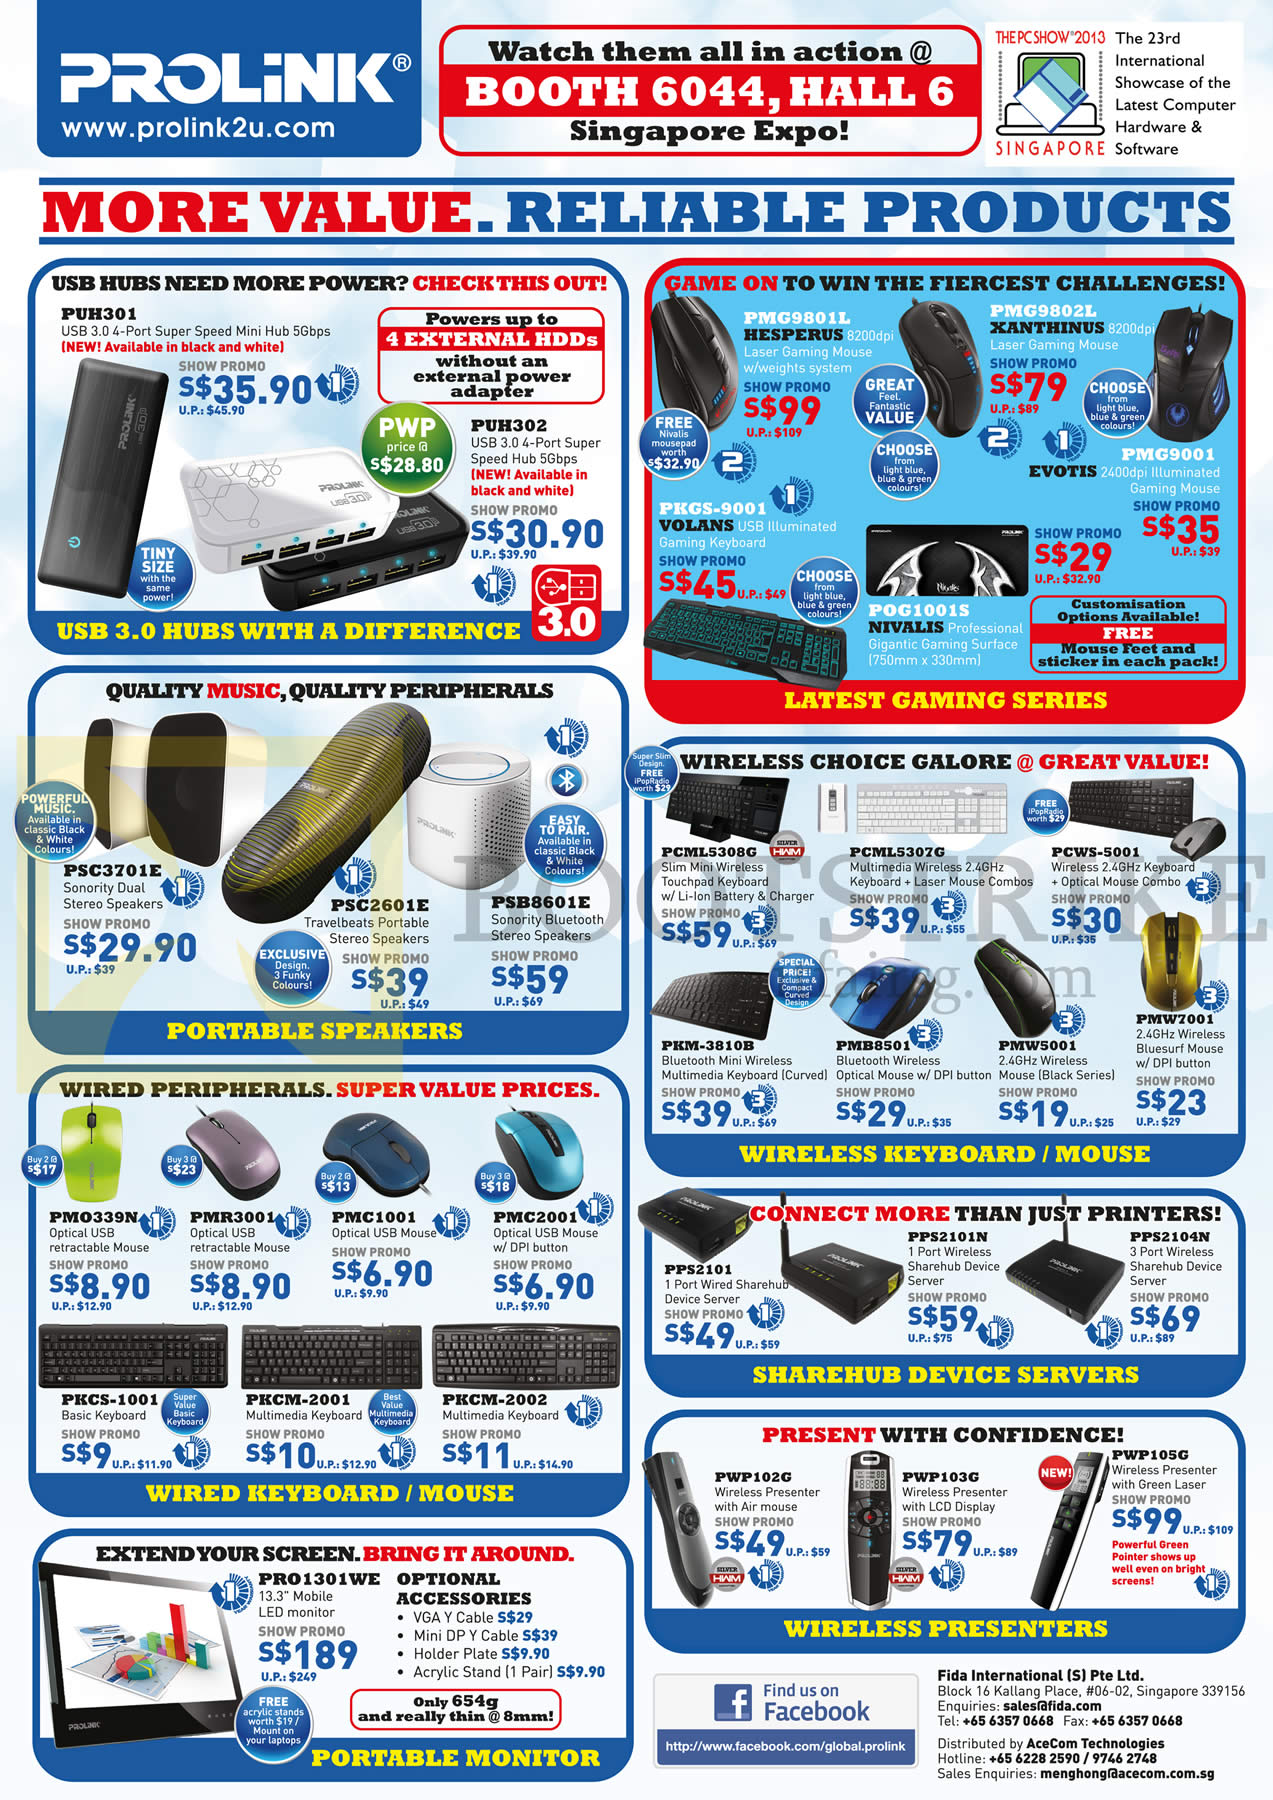 PC SHOW 2013 price list image brochure of Cybermind Prolink Networking Accessories USB Hub, Mouse, Keyboards, Speakers, Wireless, Device Server, Monitor, Presenter